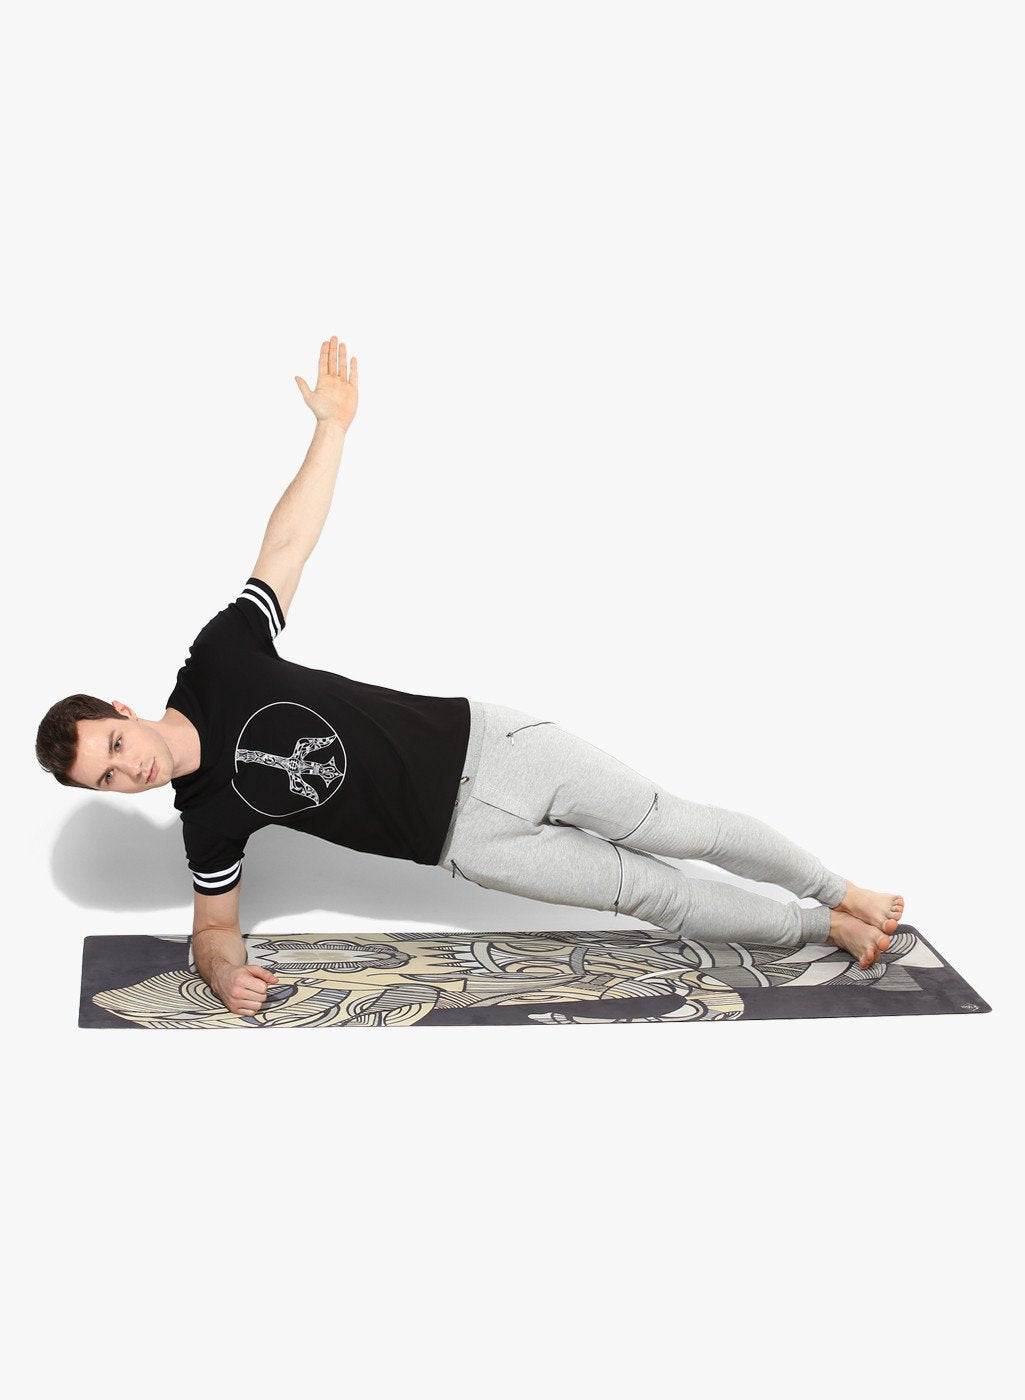 Spiritual Warrior Handmade Eco-Friendly Elephant Yoga Mat